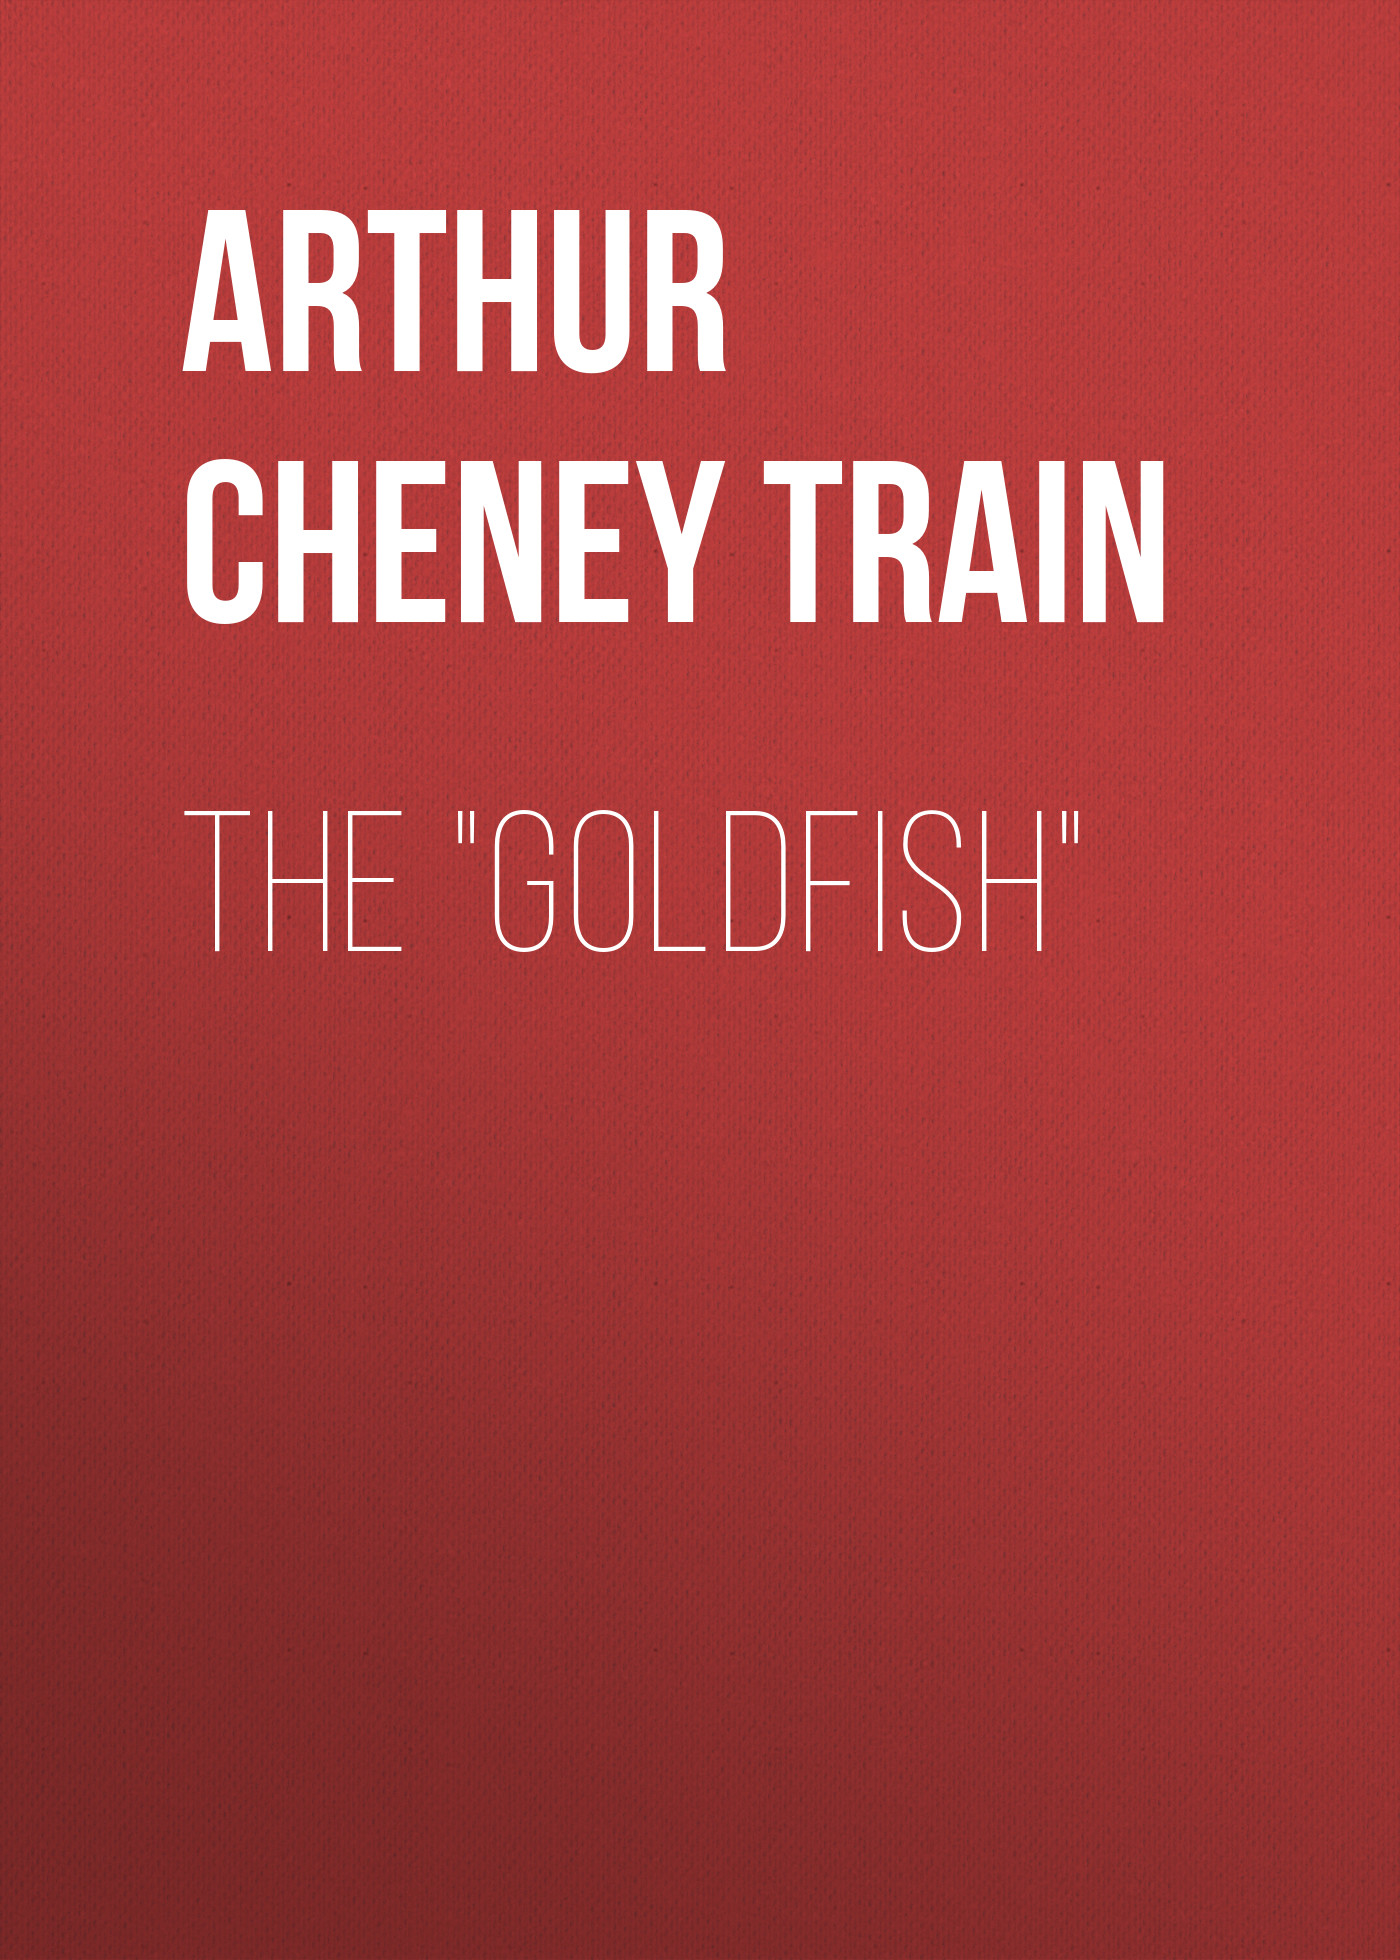 Arthur Cheney Train The Goldfish